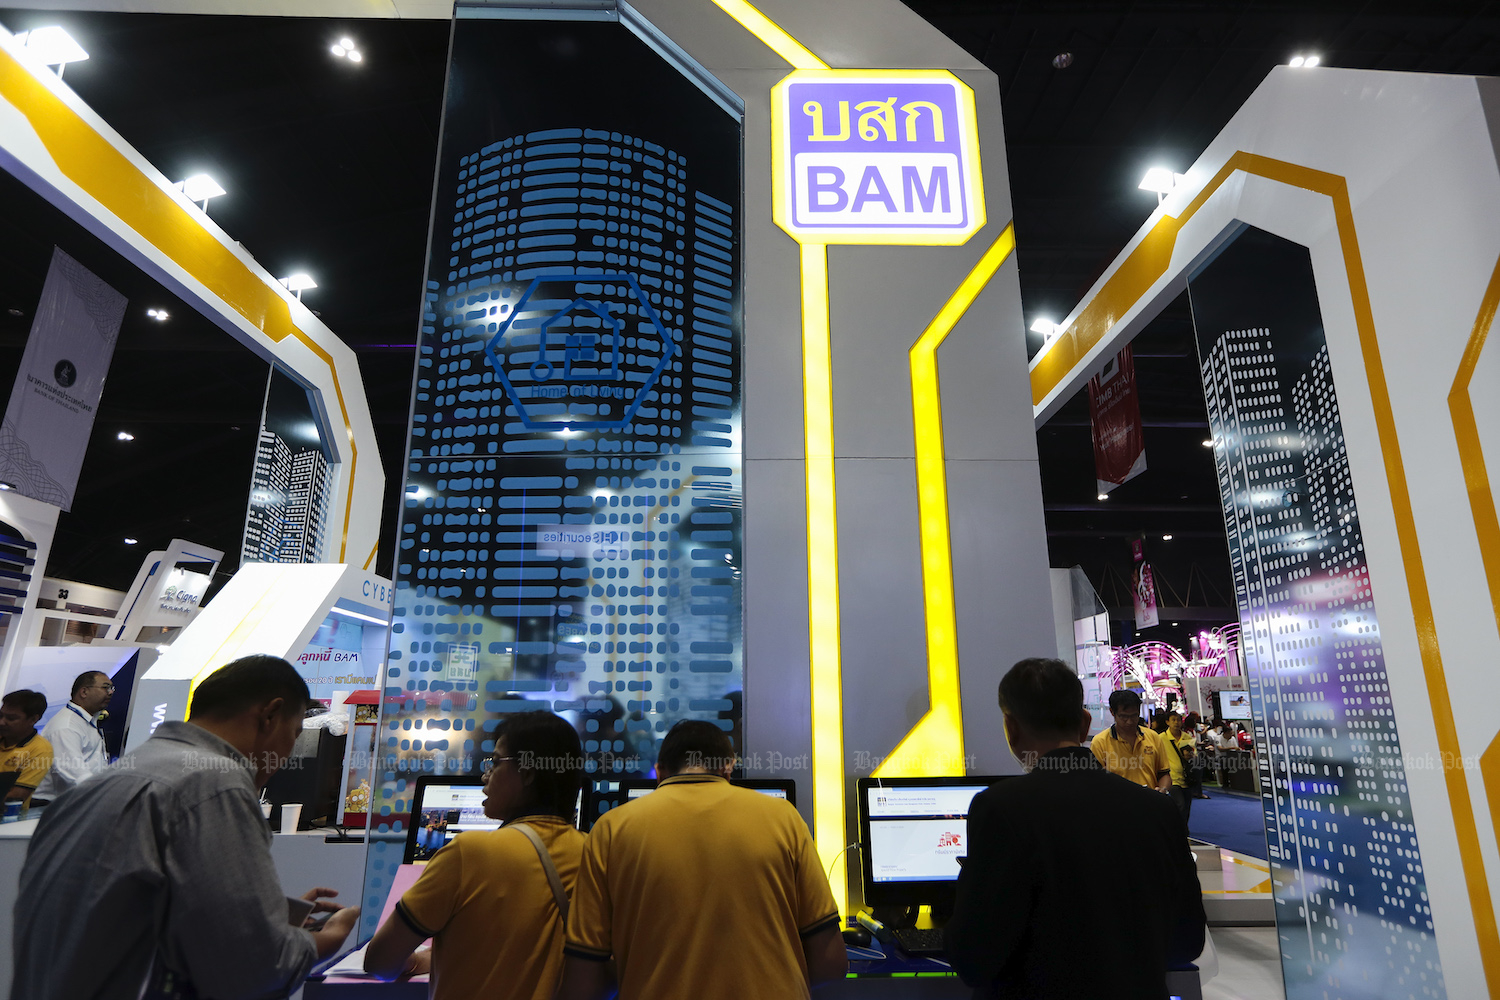 People visit the Bangkok Commercial Asset Management (BAM) booth at Money Expo 2019 in Bangkok in May. (Post file photo)